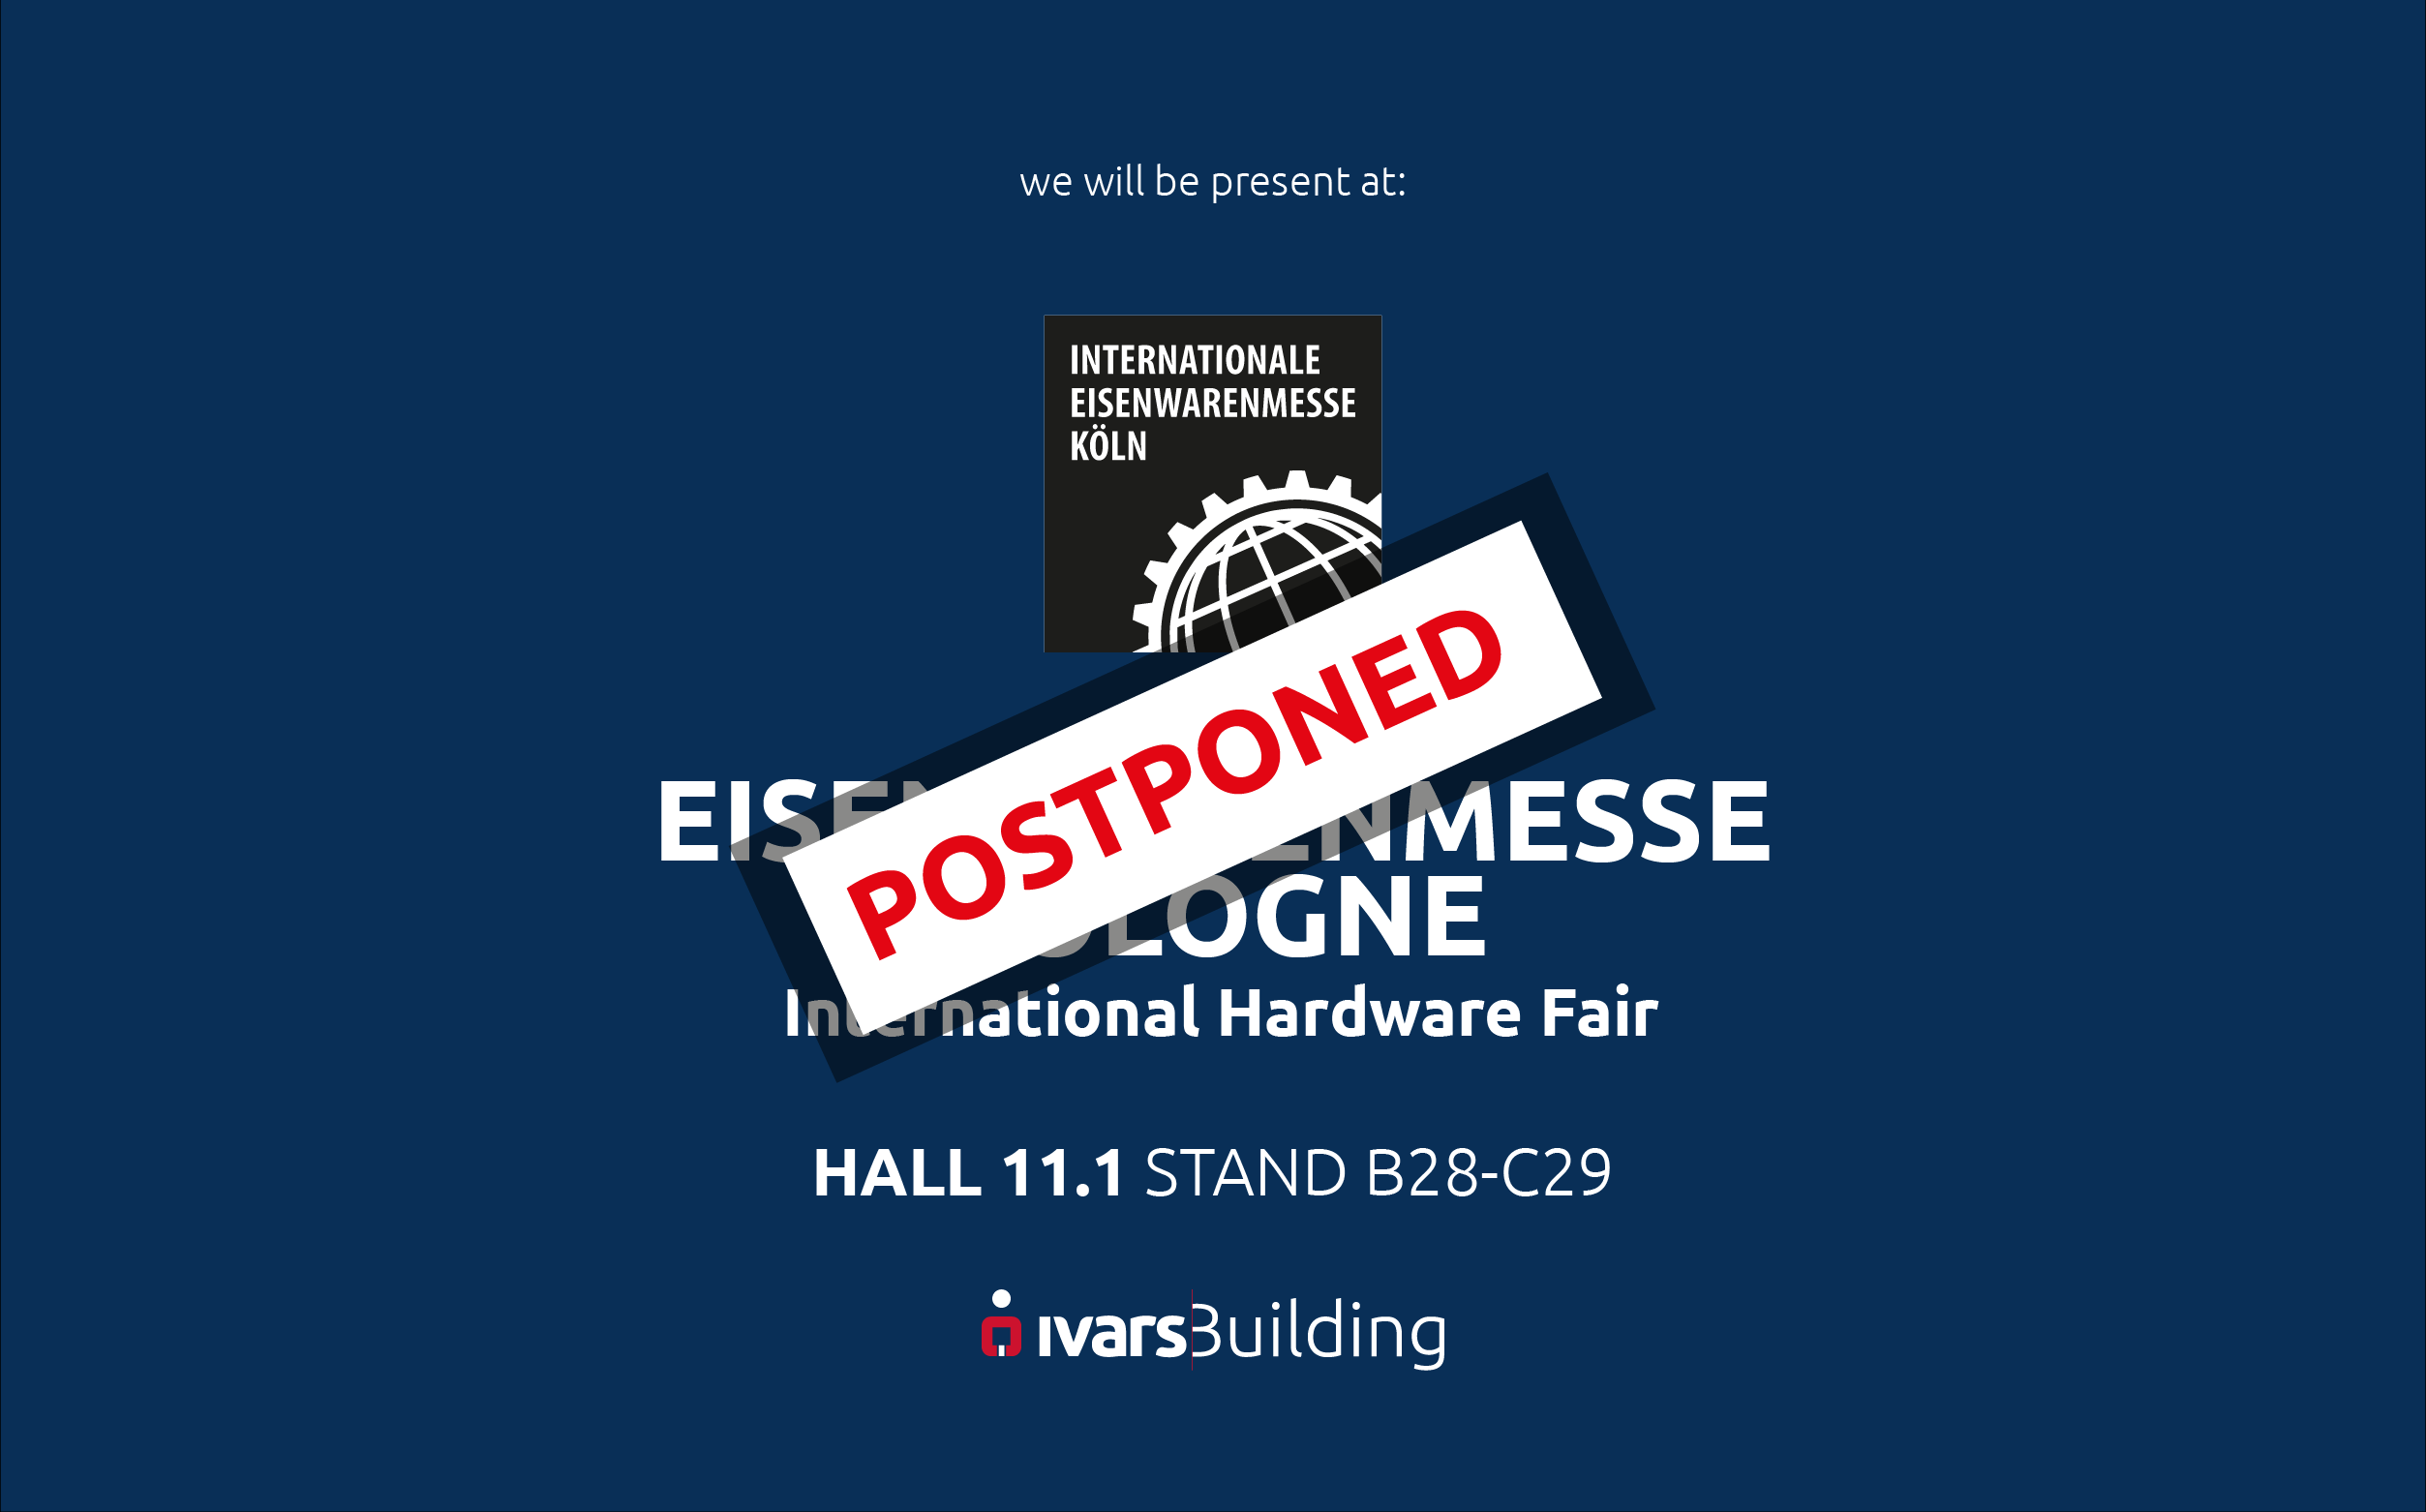 Eisenwarenmesse Cologne rescheduled for February 2021